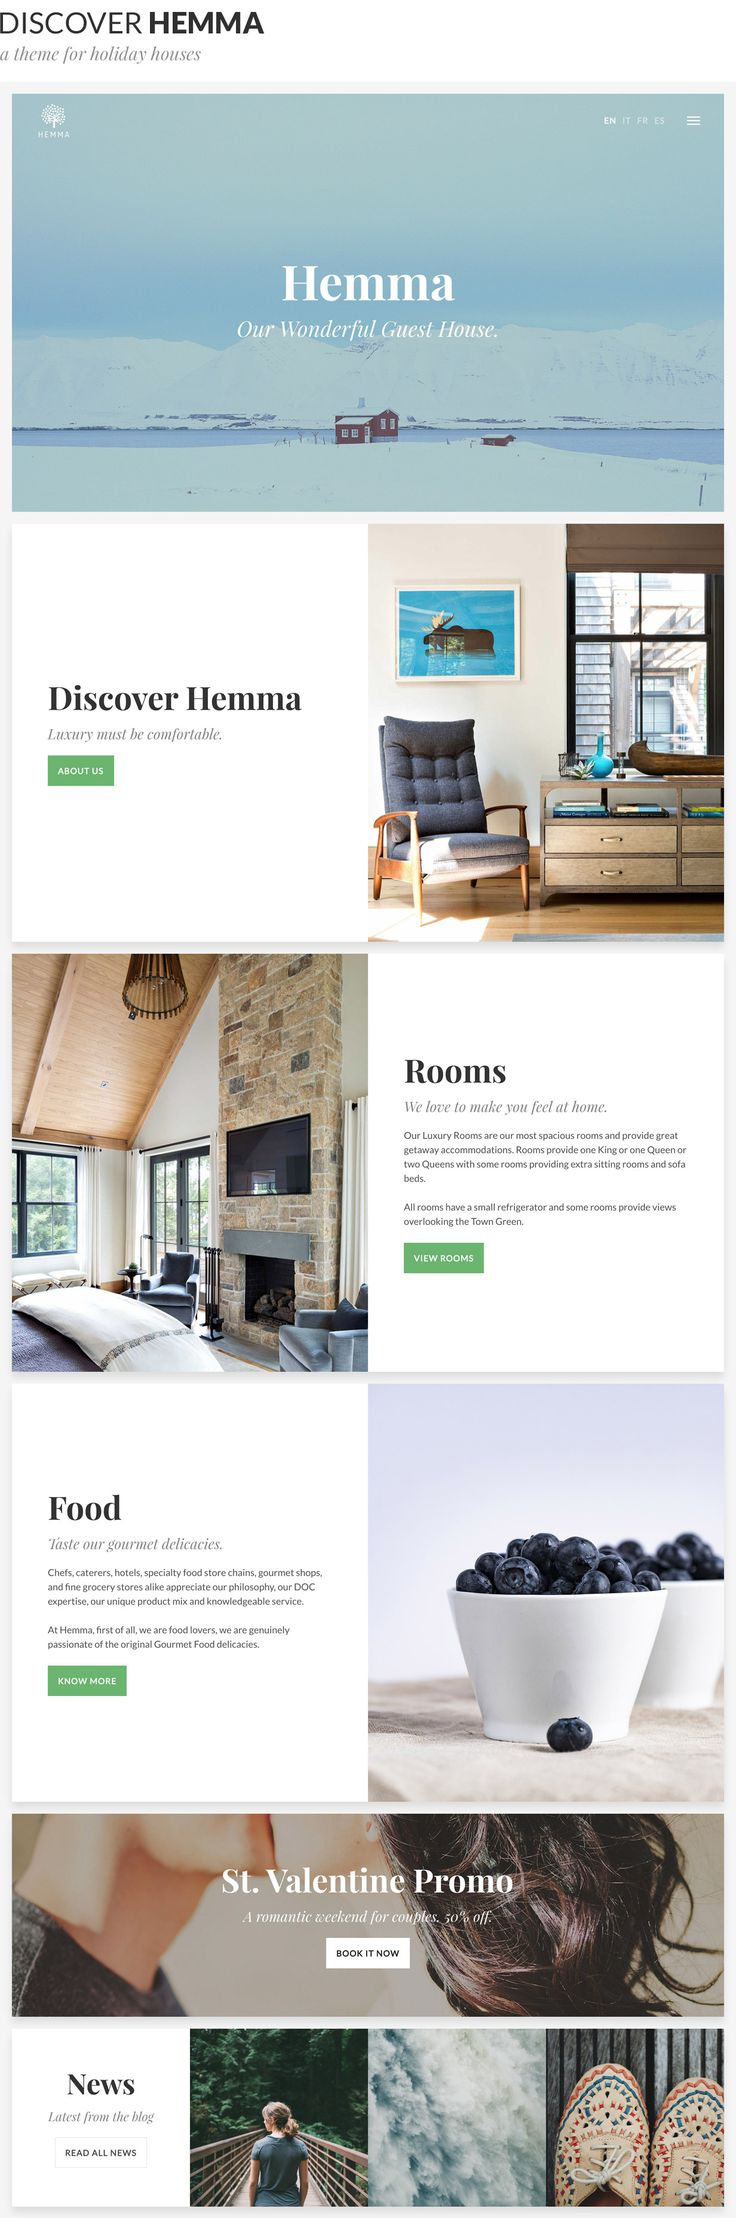 Hemma - A WordPress theme for Holiday Houses • Download theme ➝ https://themeforest.net/item/hemma-a-wordpress-theme-for-holiday-houses/15924438?ref=pxcr